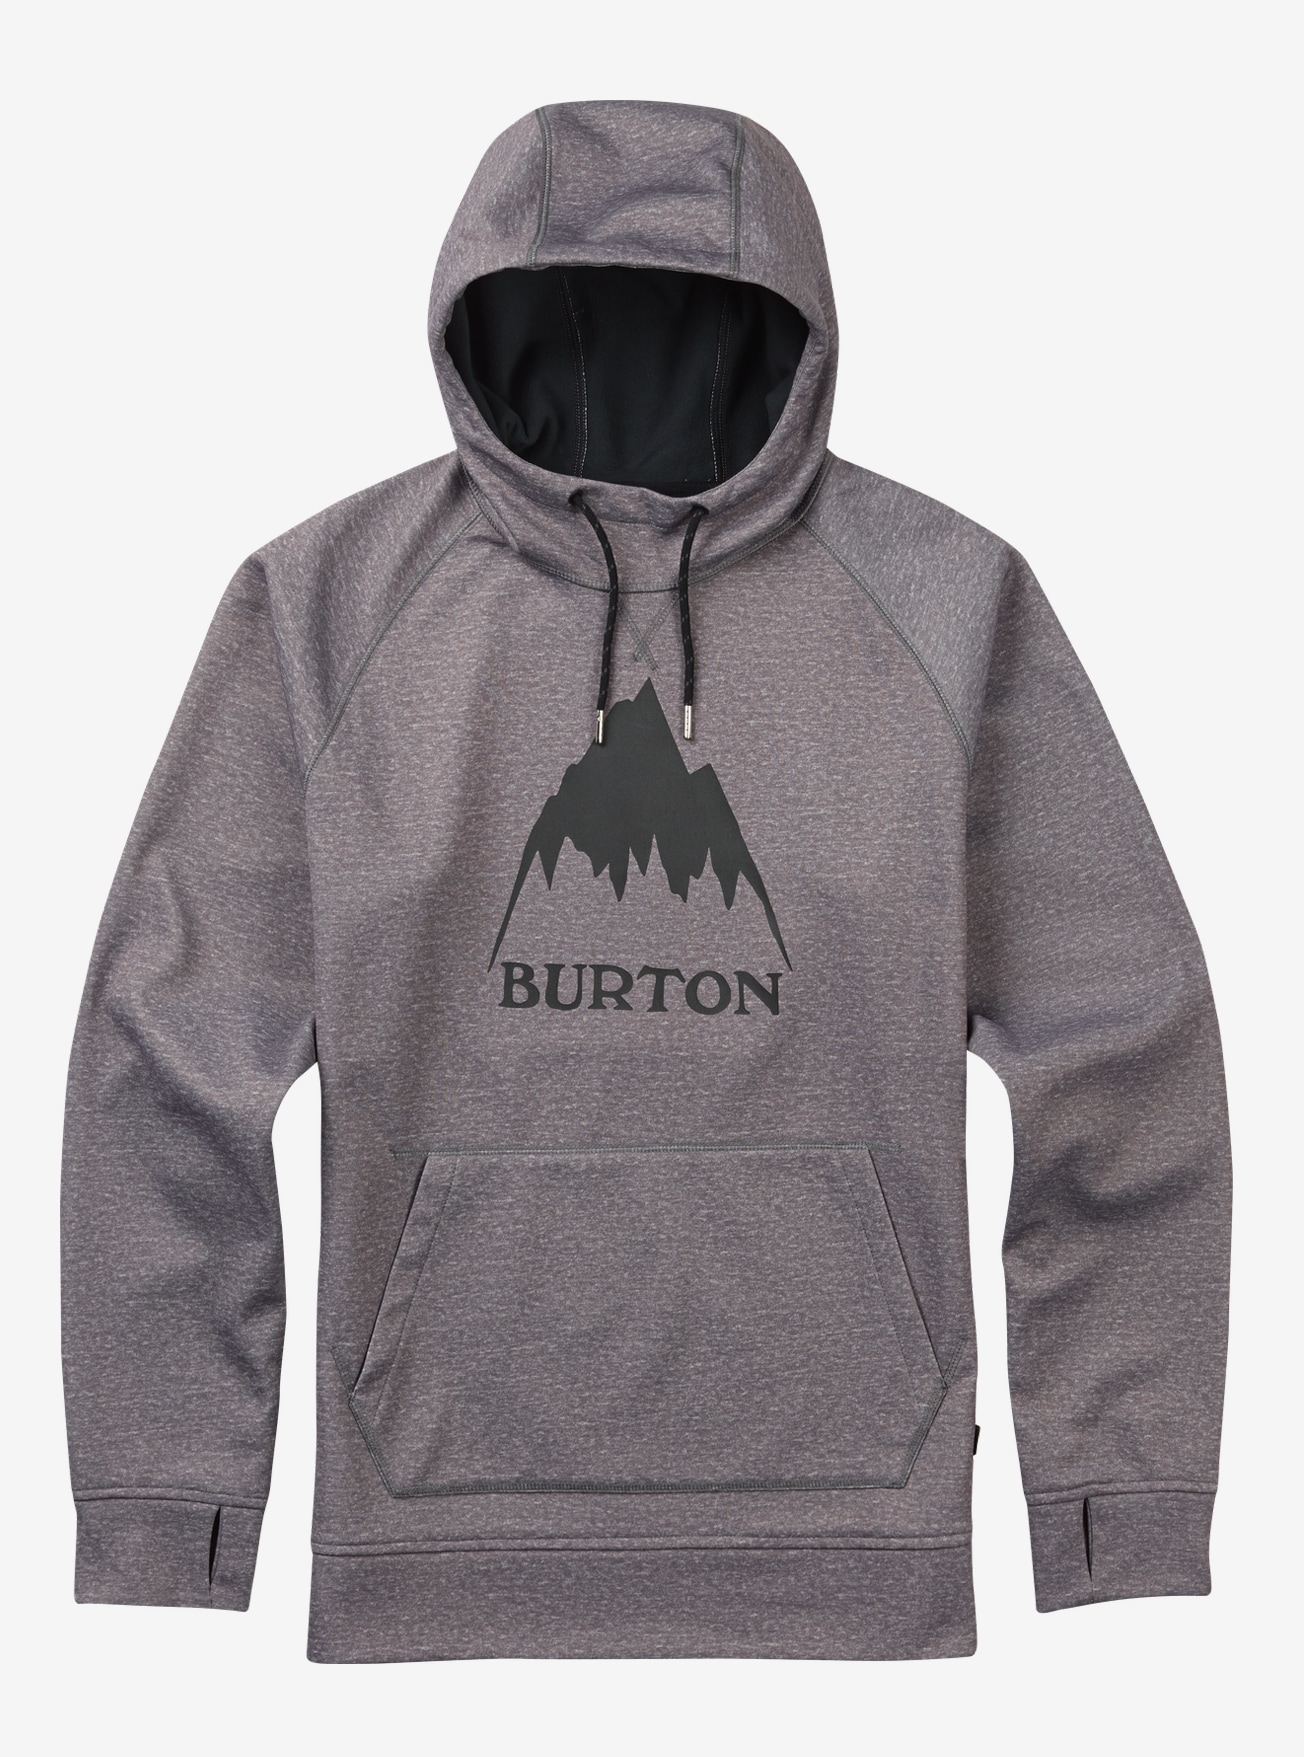 Burton Crown Bonded Pullover Hoodie shown in Monument Heather